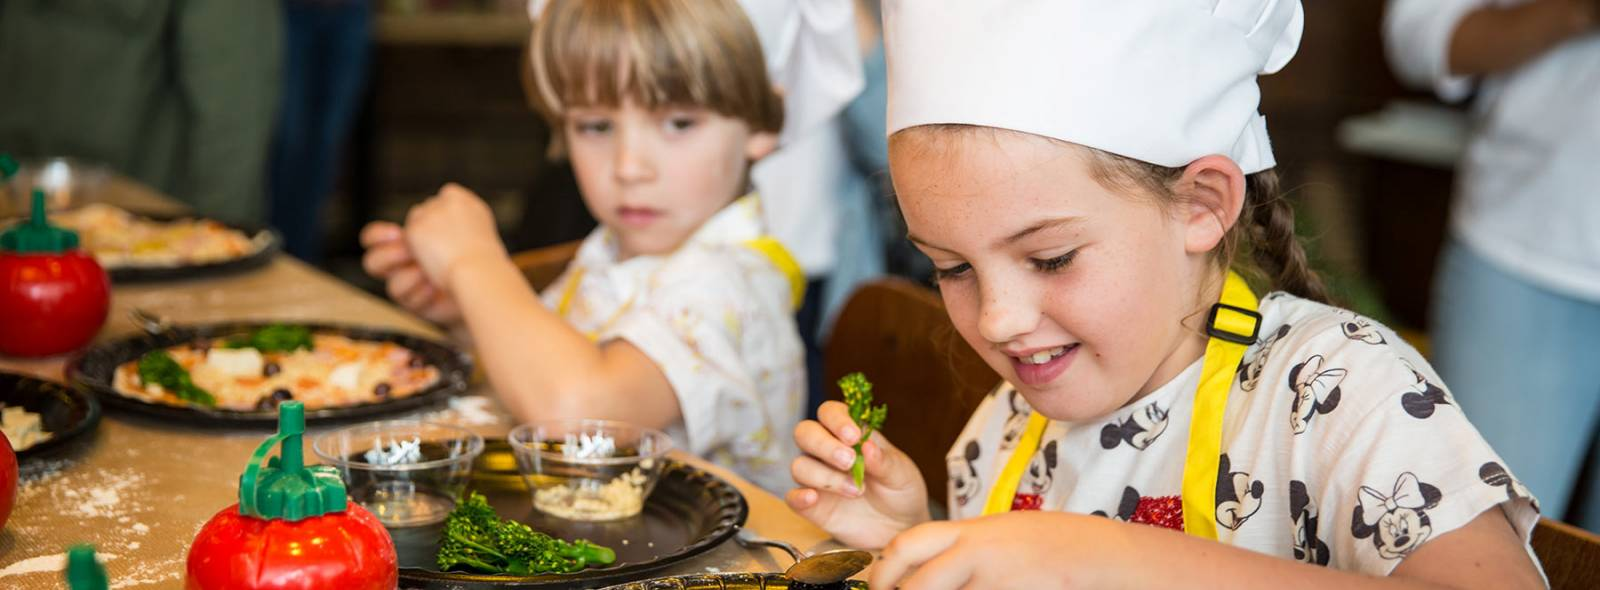 Kids gordon ramsay restaurants inspiration 2018